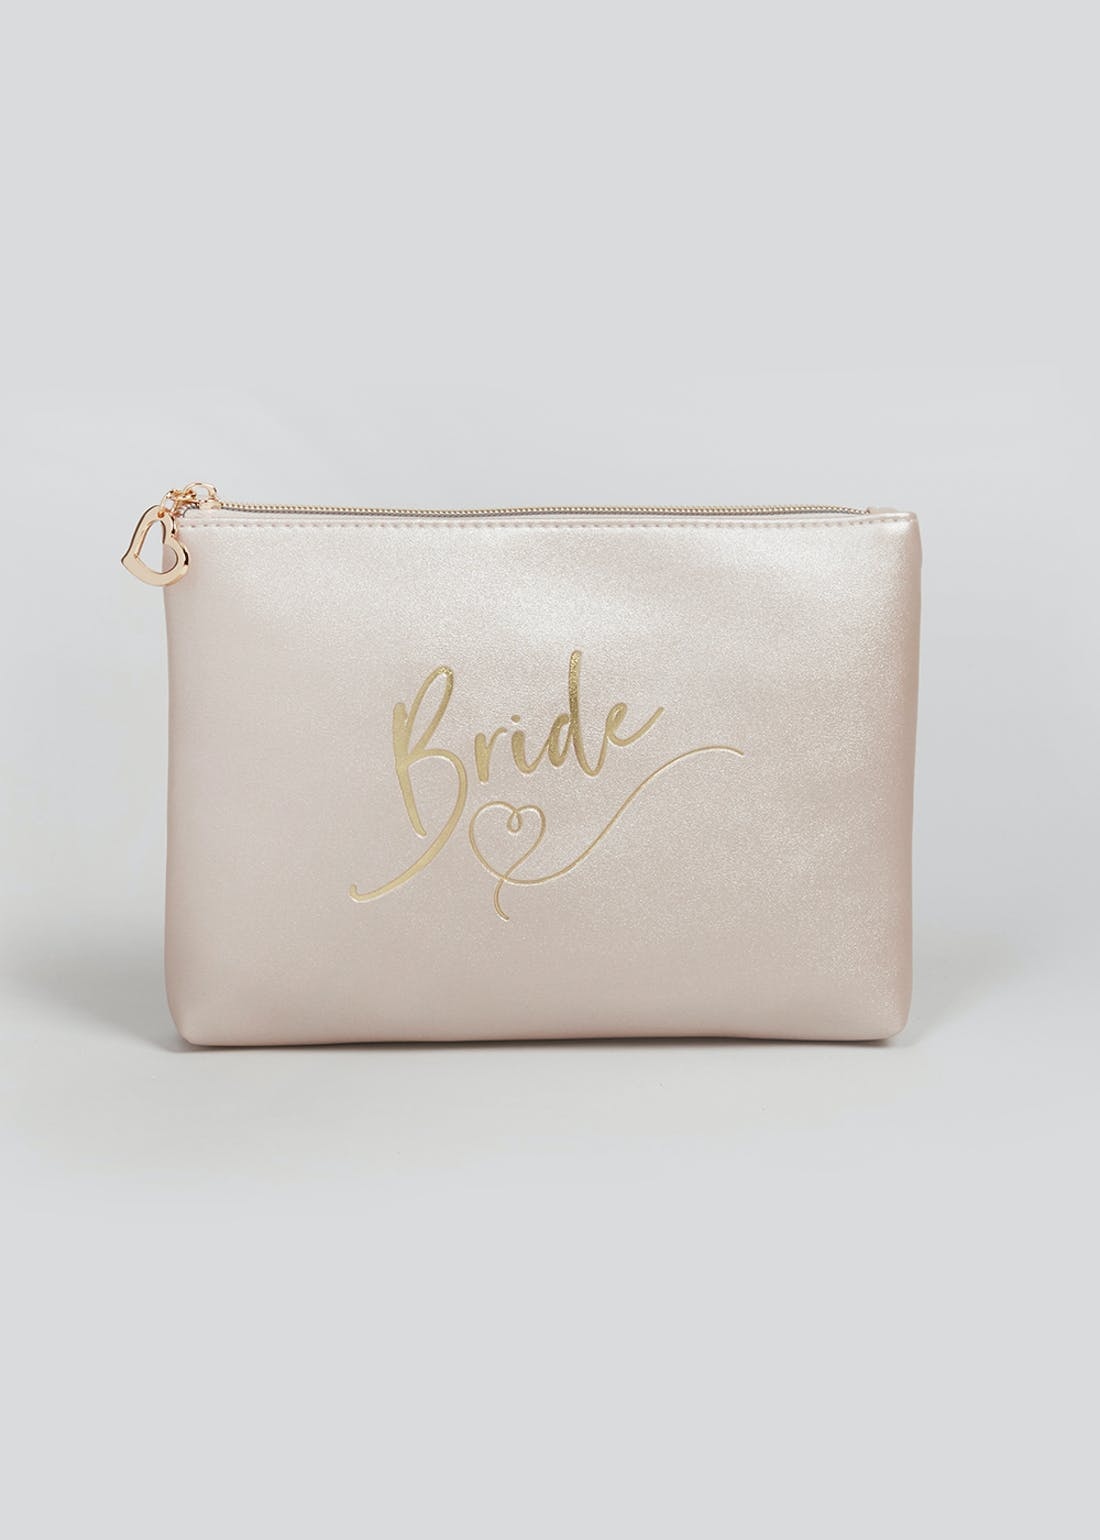 Bride Makeup Bag (23.5cm x 17cm x 3.5cm)